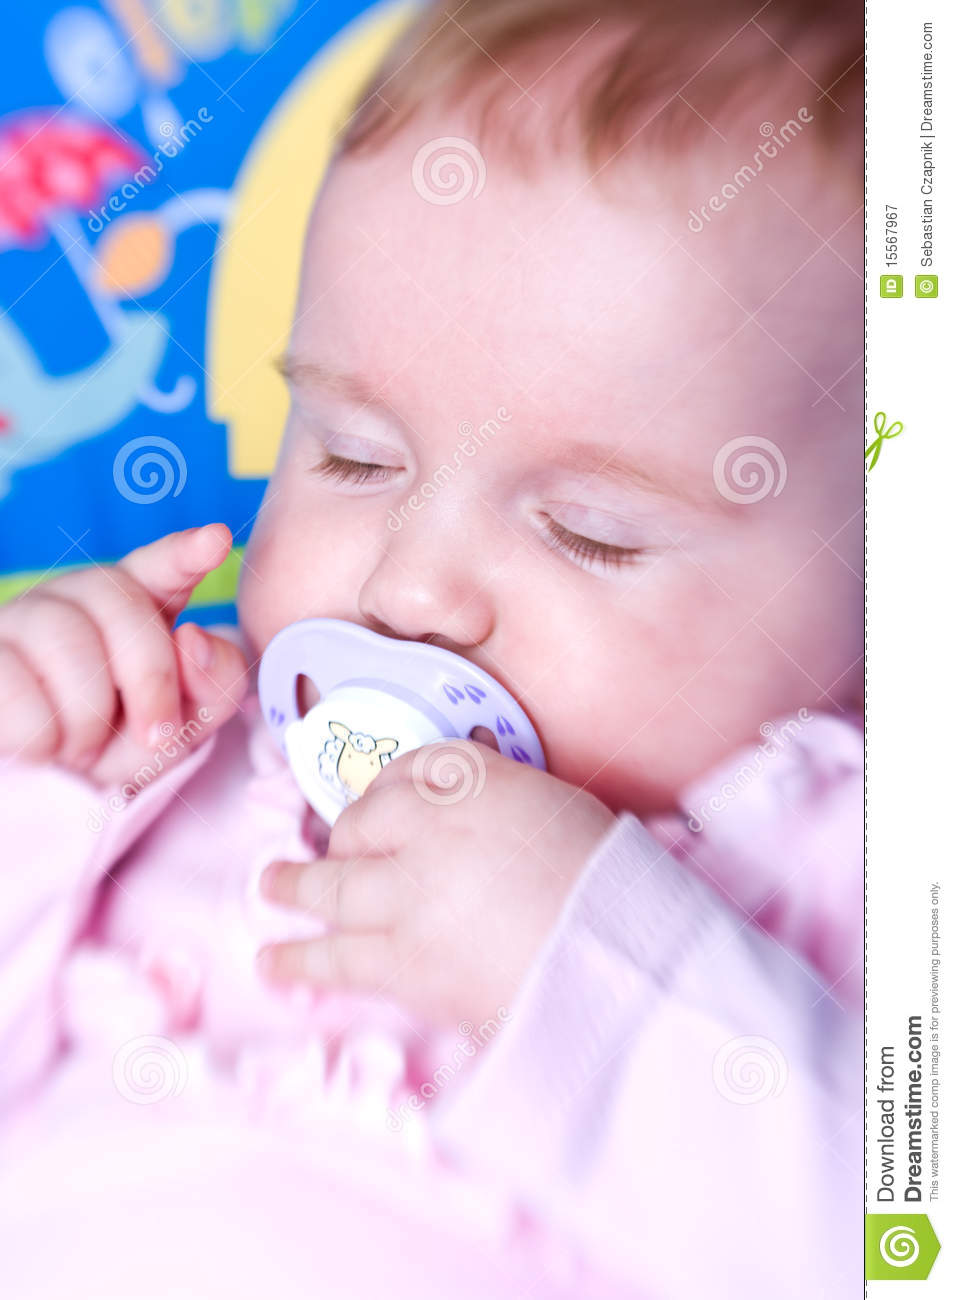 Sleeping Baby With Pacifier Royalty Free Stock Photography